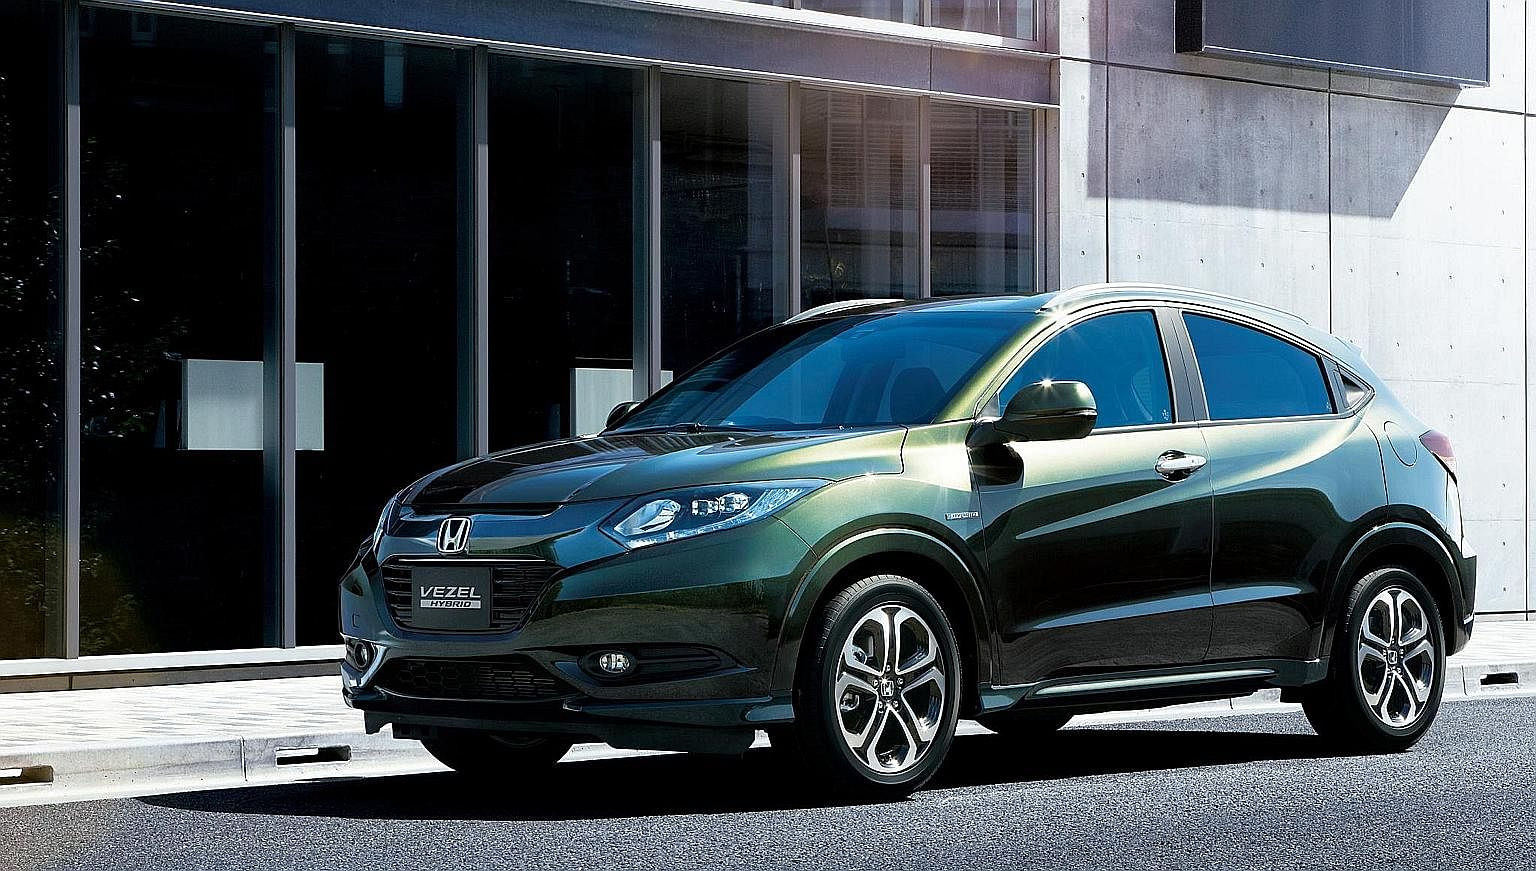 Honda Vezels are sold by parallel importers and authorised agents are not obliged to attend to recalls affecting parallel imported cars.